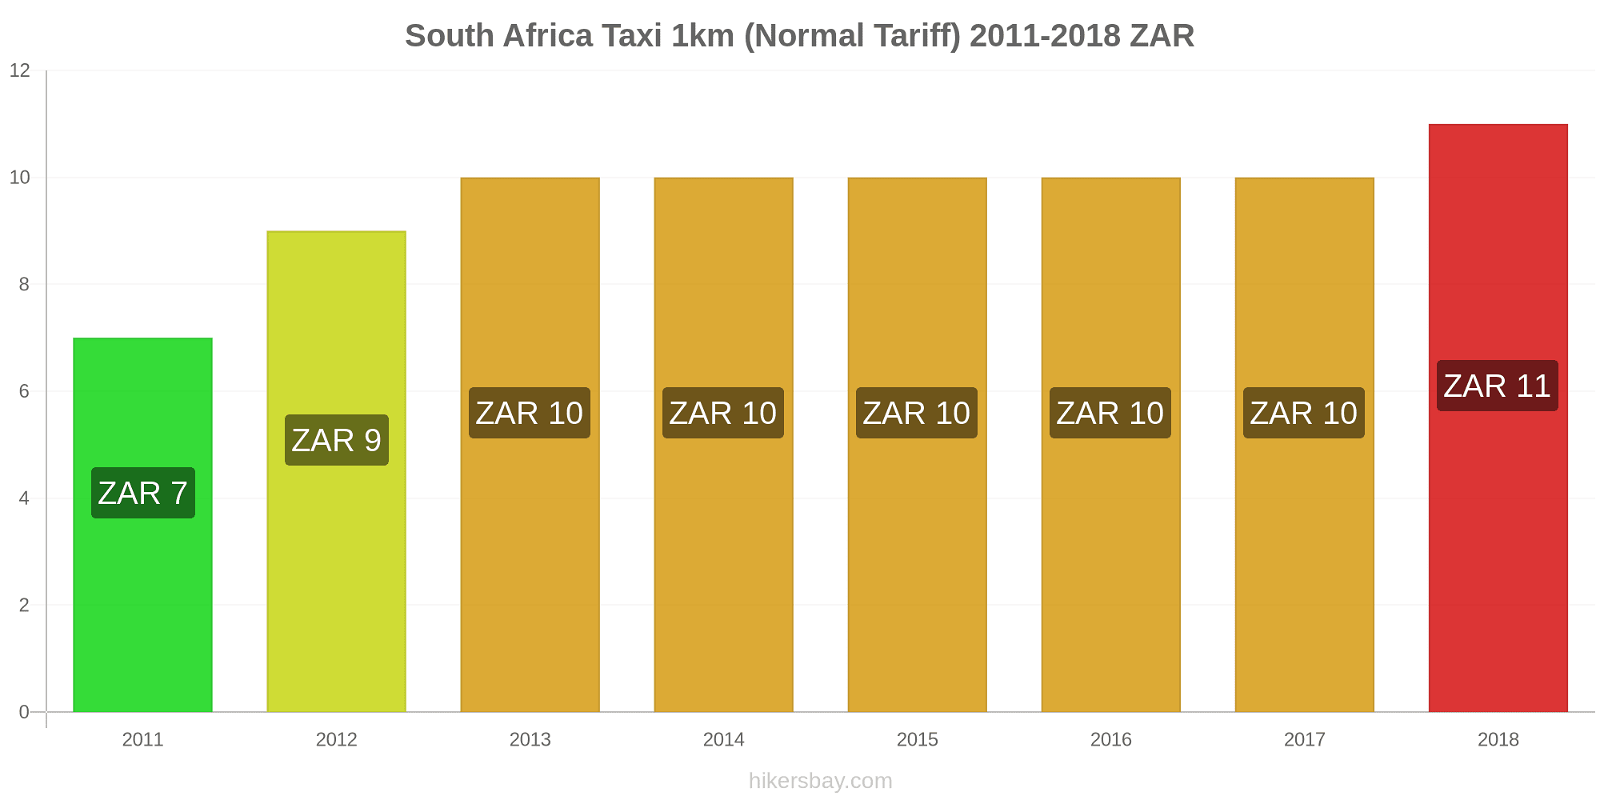 South Africa price changes Taxi 1km (Normal Tariff) hikersbay.com